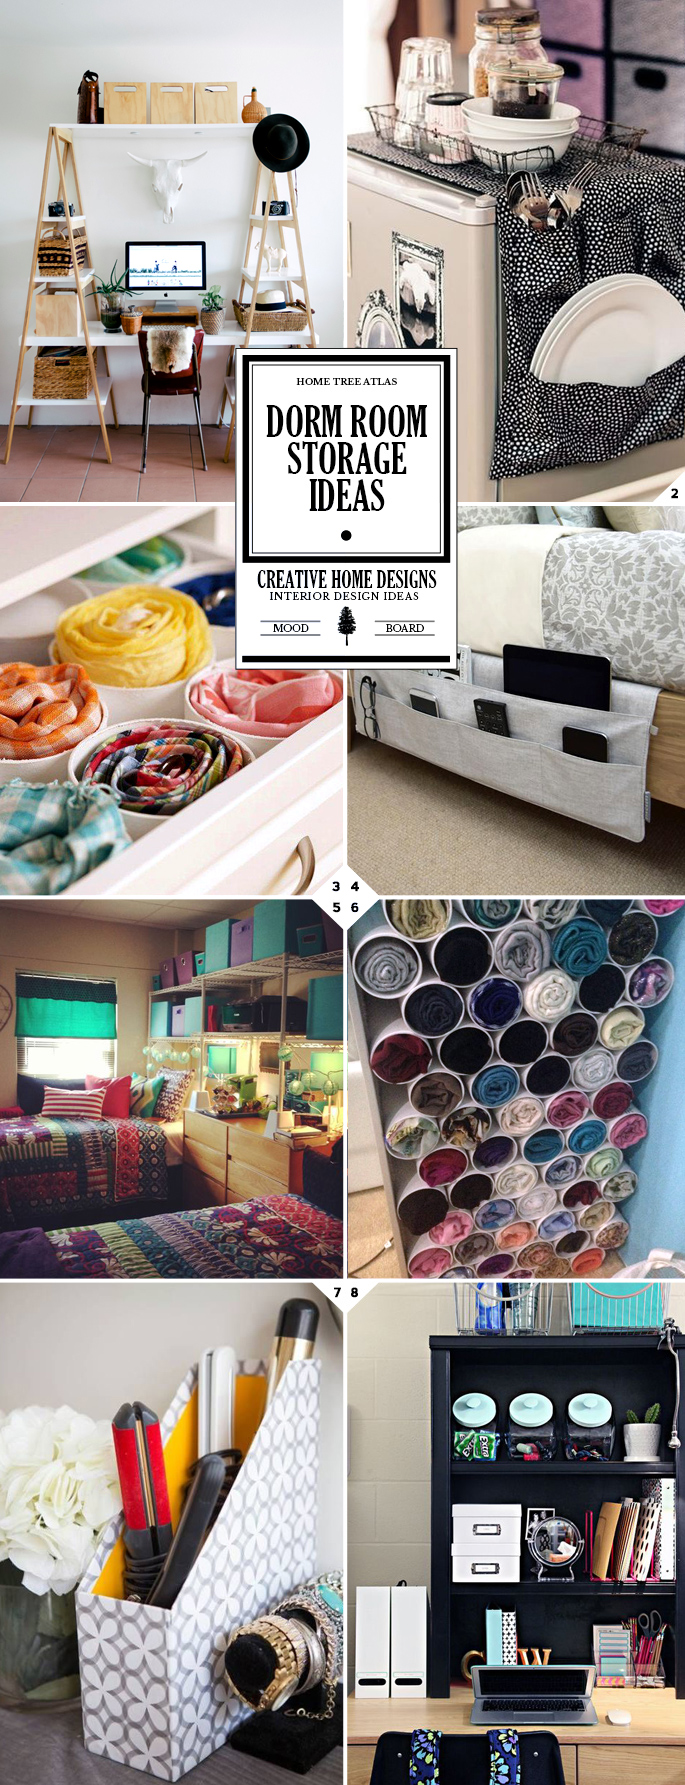 Dorm room storage ideas and space saving organizing tips